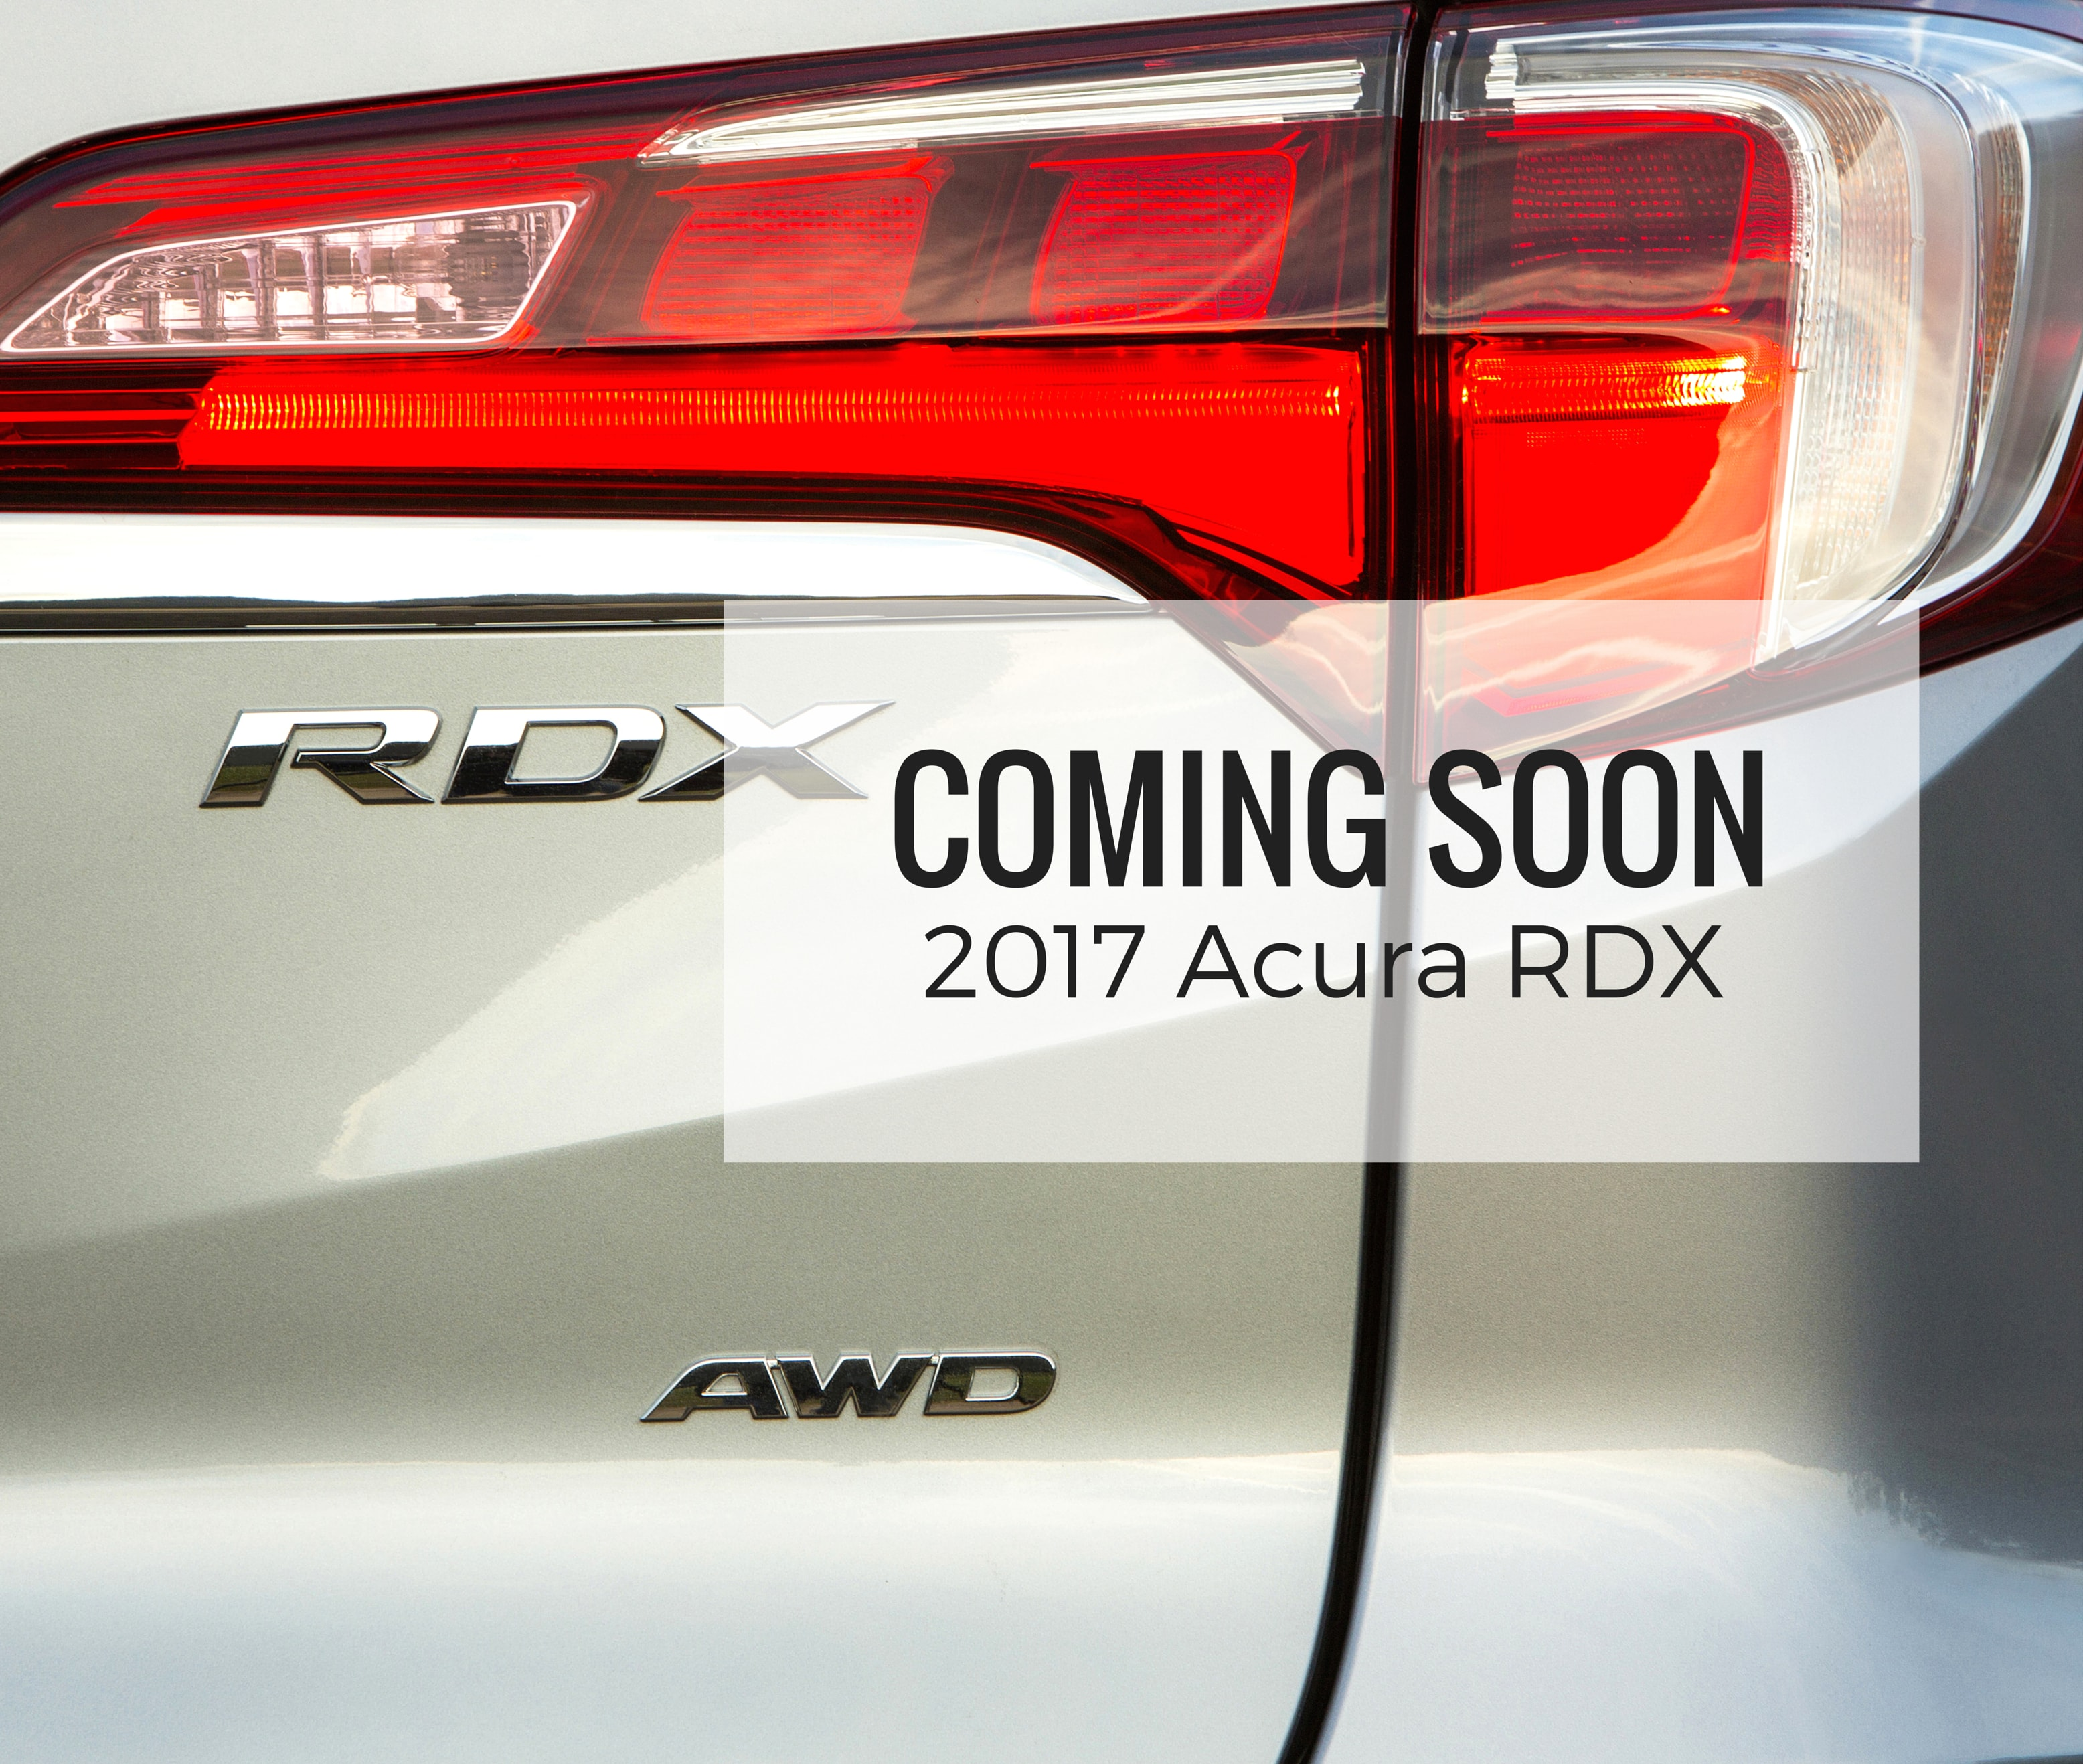 What You Need To Know About The 2017 Acura RDX